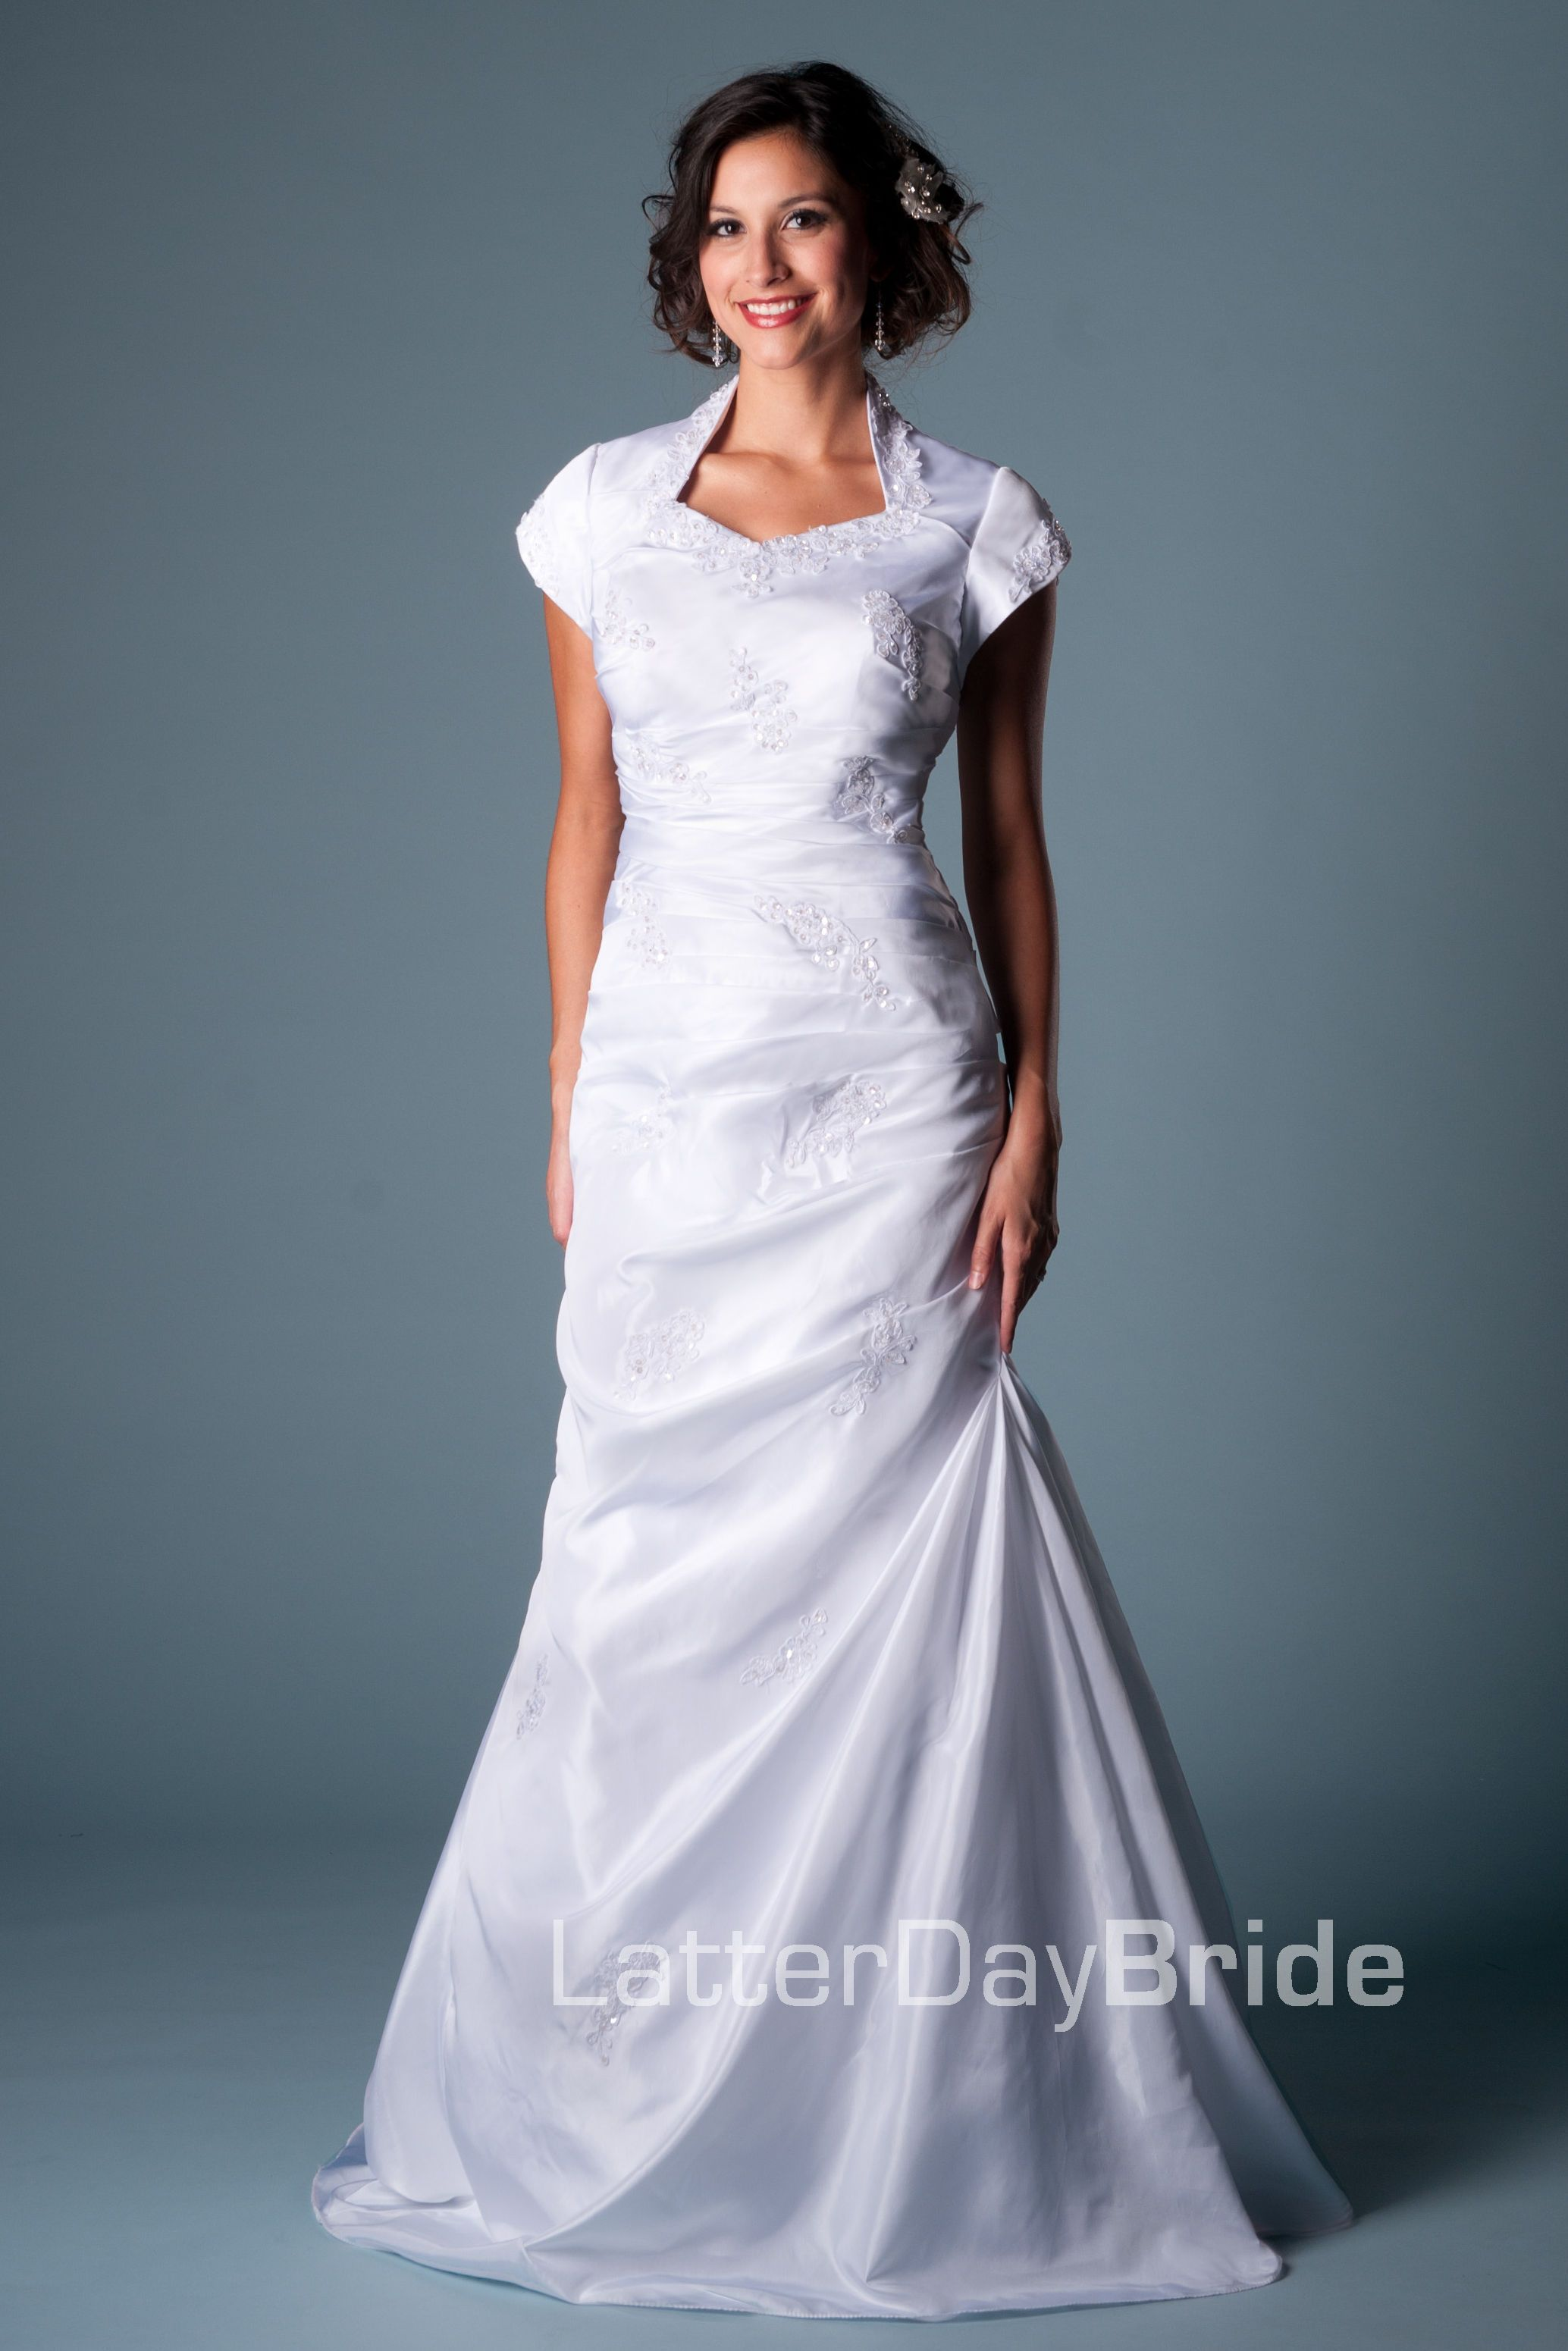 Modest Wedding Dress, Clarion | LatterDayBride & Prom | There will ...